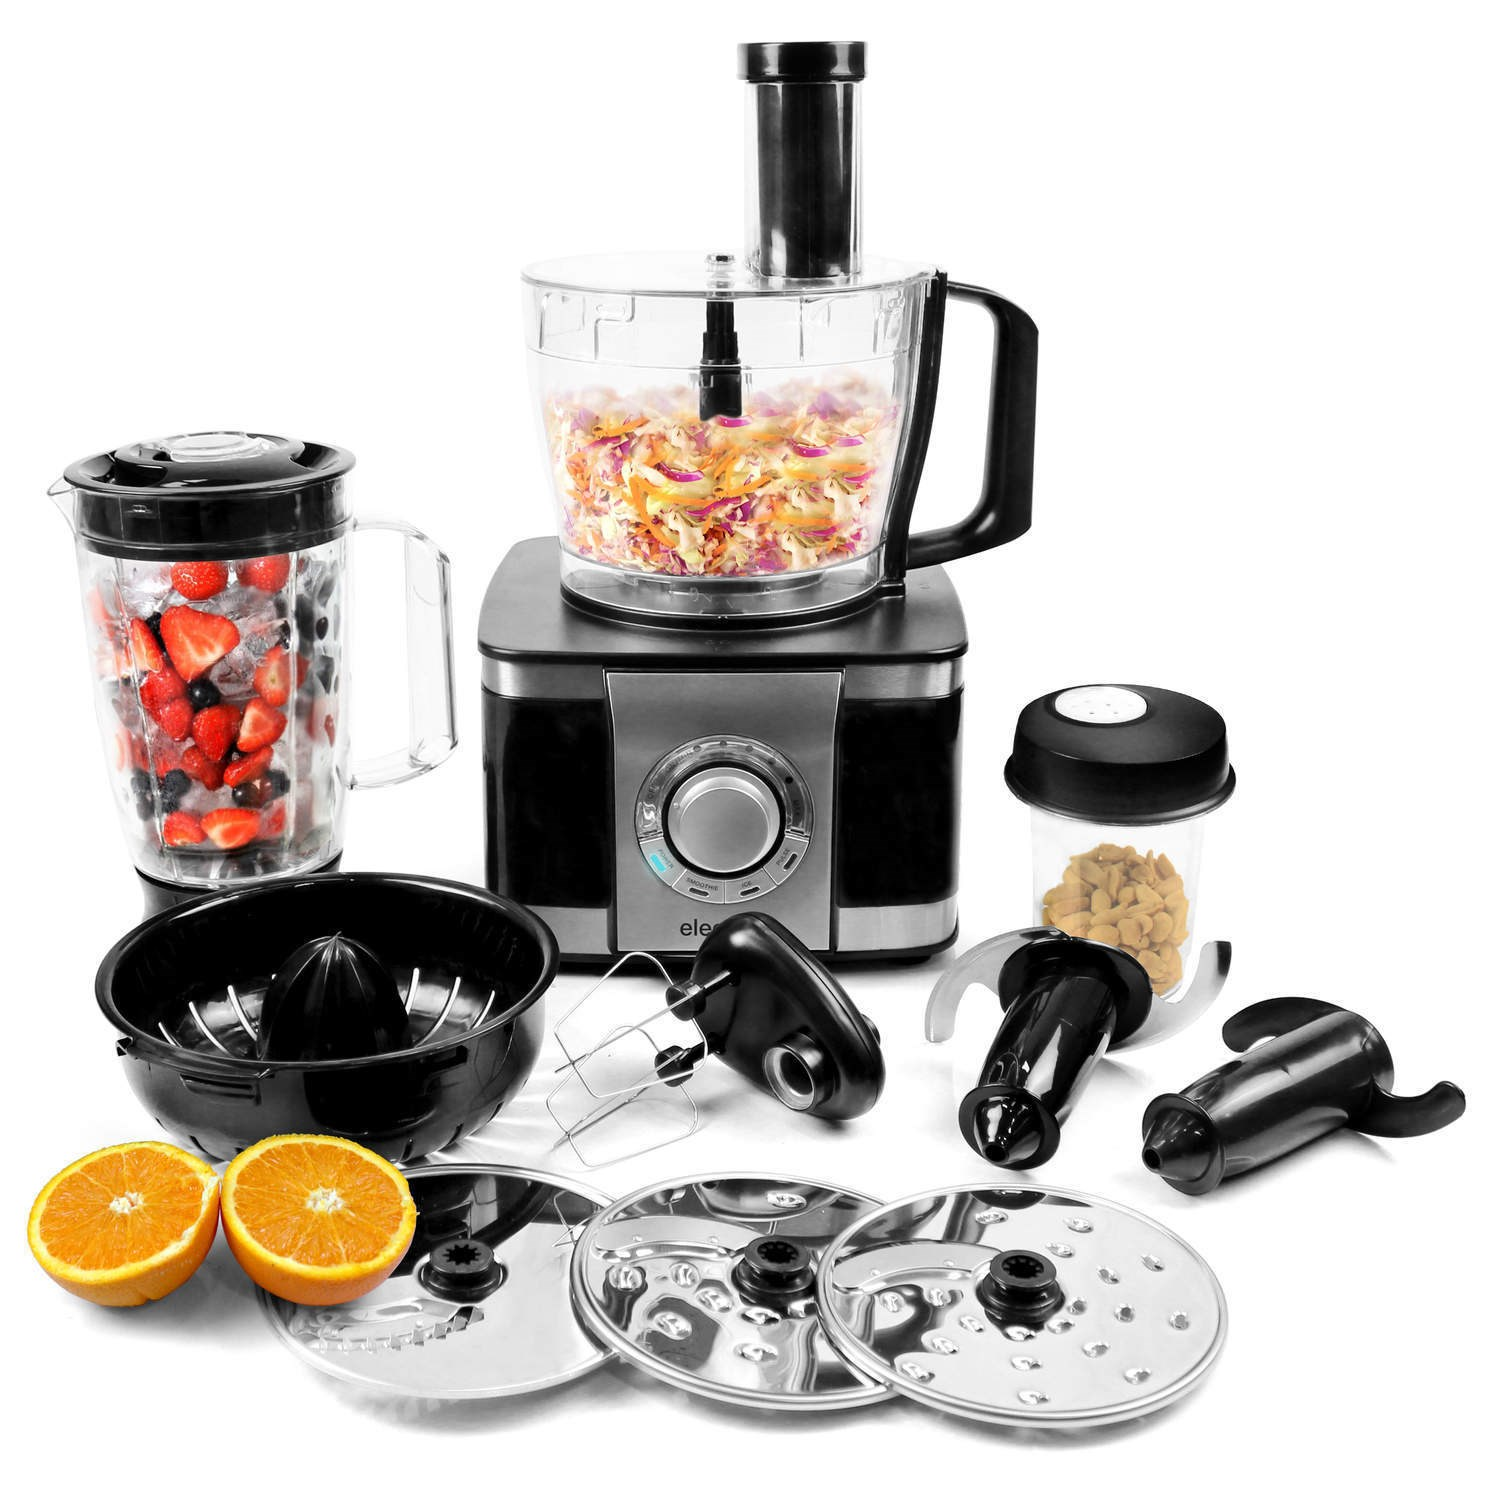 electriq 1100w food processor blender chopper mixer juicer grinder black ebay. Black Bedroom Furniture Sets. Home Design Ideas